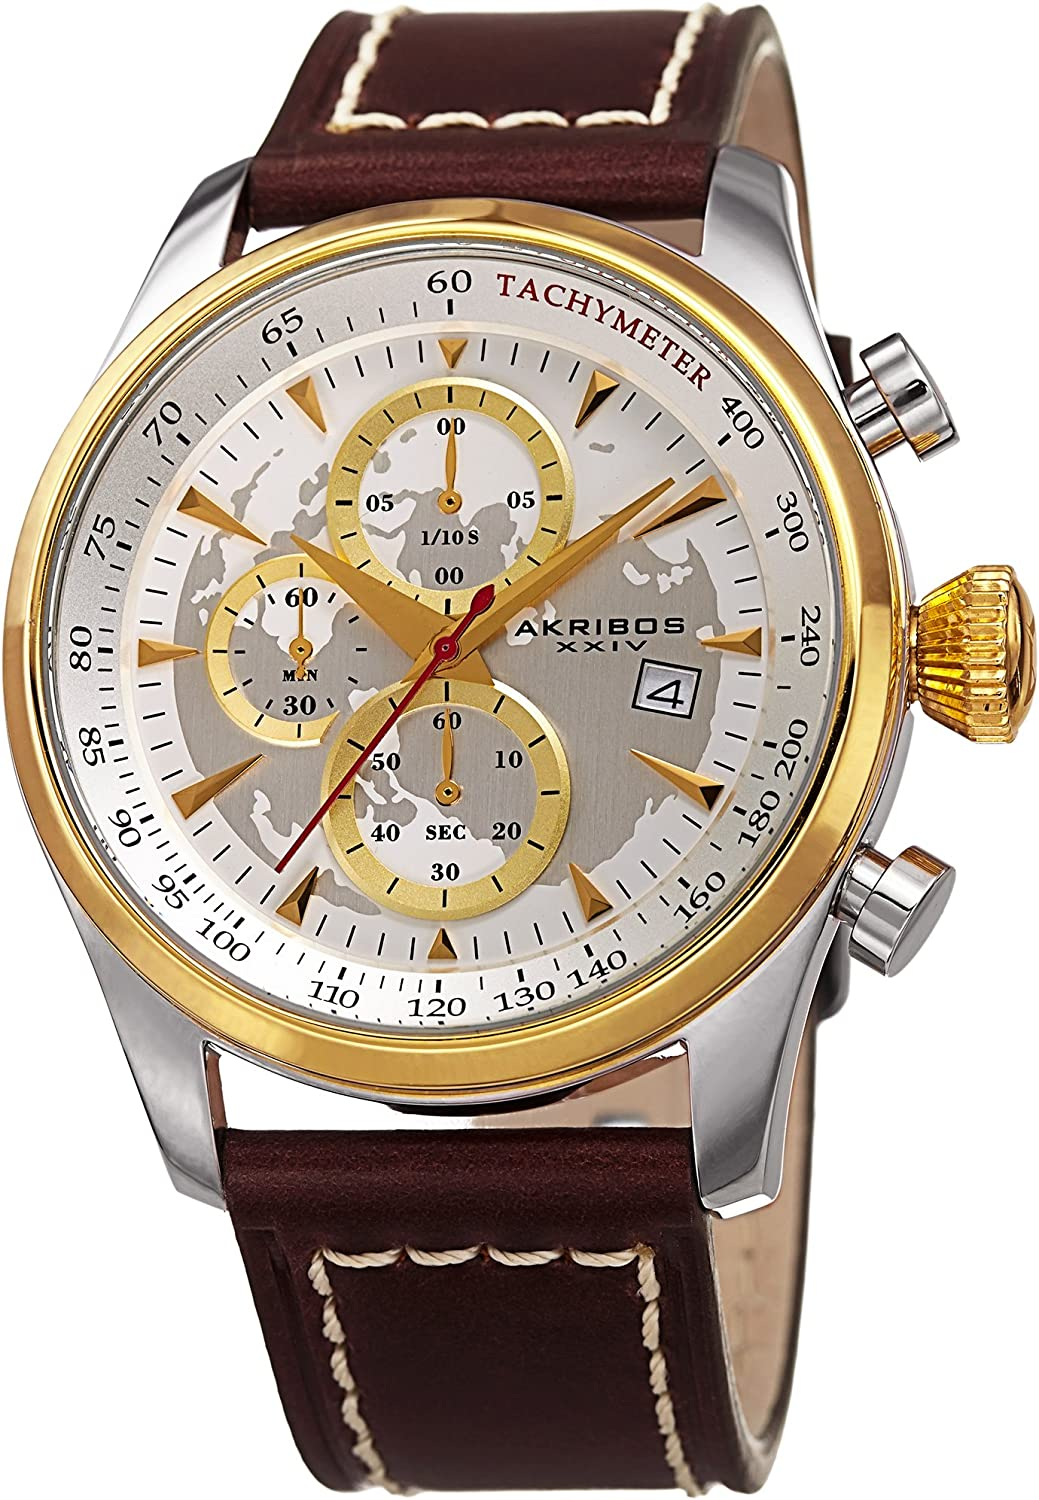 Akribos XXIV Chronograph Men s Watch – 3 Subdials with Date Window on Sunray Dial On Genuine Leather Strap – AK915